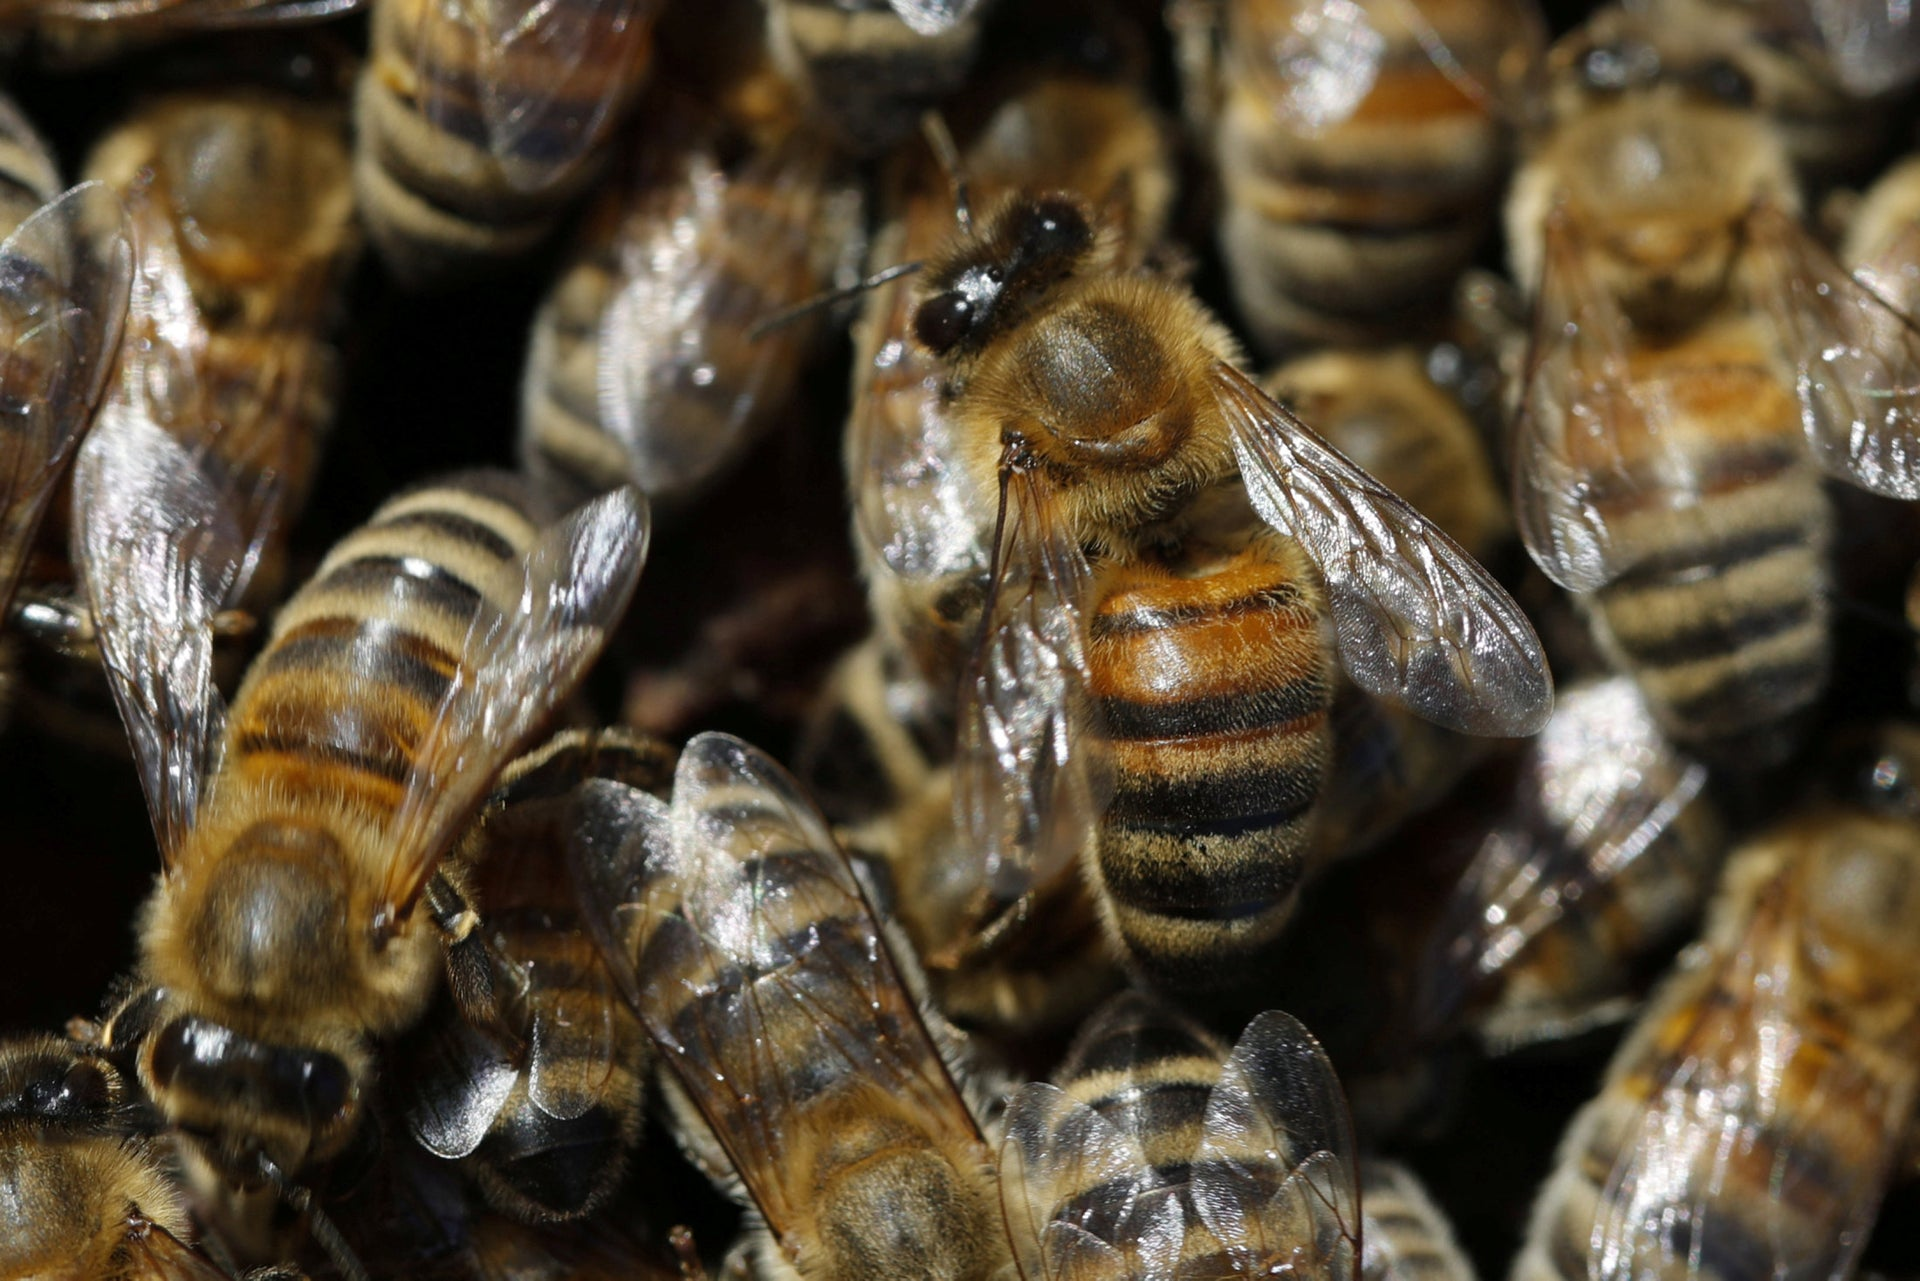 Bees are seen on a honeycomb section of a bee hive on the rooftop of the Mandarin Oriental Hotel in Paris, France, September 25, 2018.